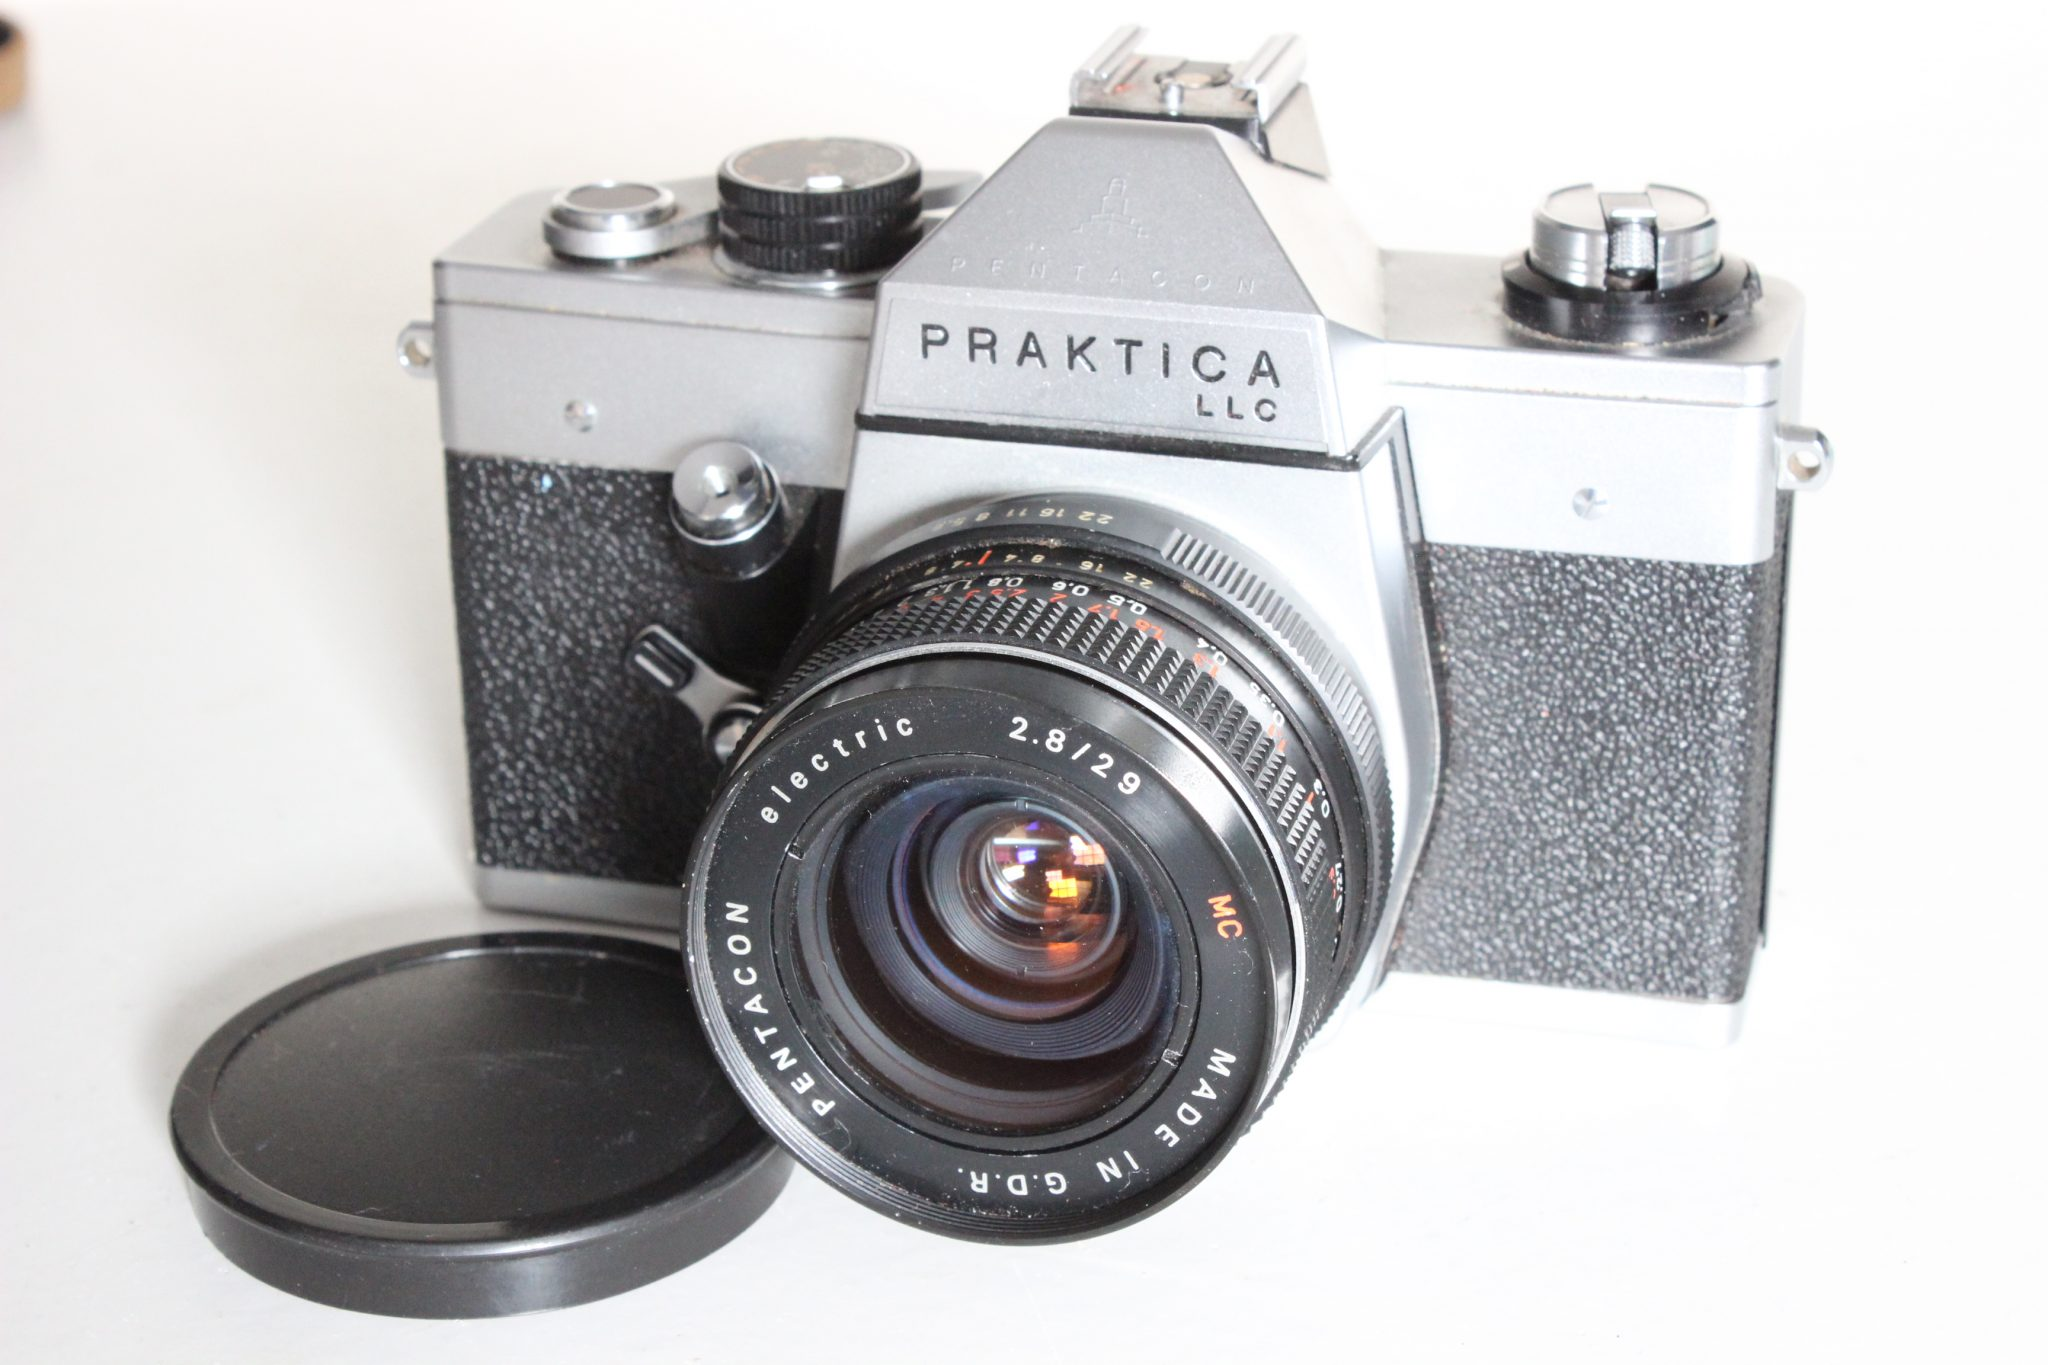 Praktica llc 35mm slr camera with 29mm wideangle lens and case